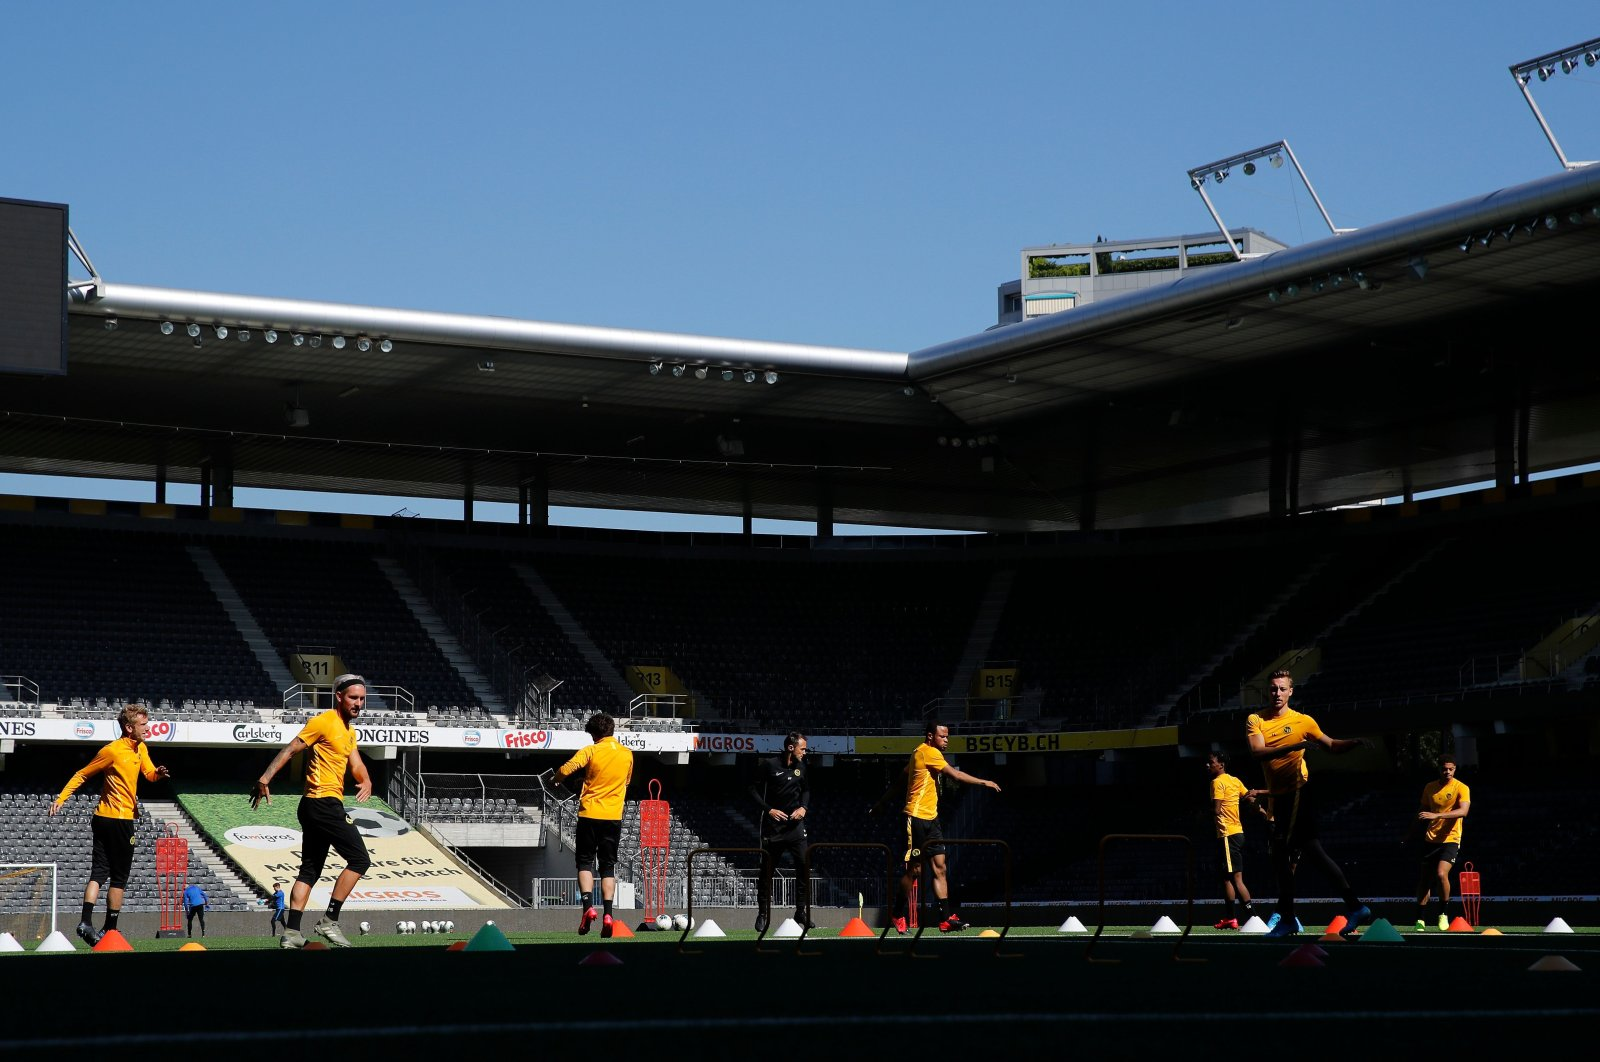 BSC Young Boys' players attend the first training football session following an easing of lockdown rules in Switzerland during the COVID-19 pandemic at the Stade de Suisse stadium in Bern, Switzerland on May 18, 2020. (AFP Photo)